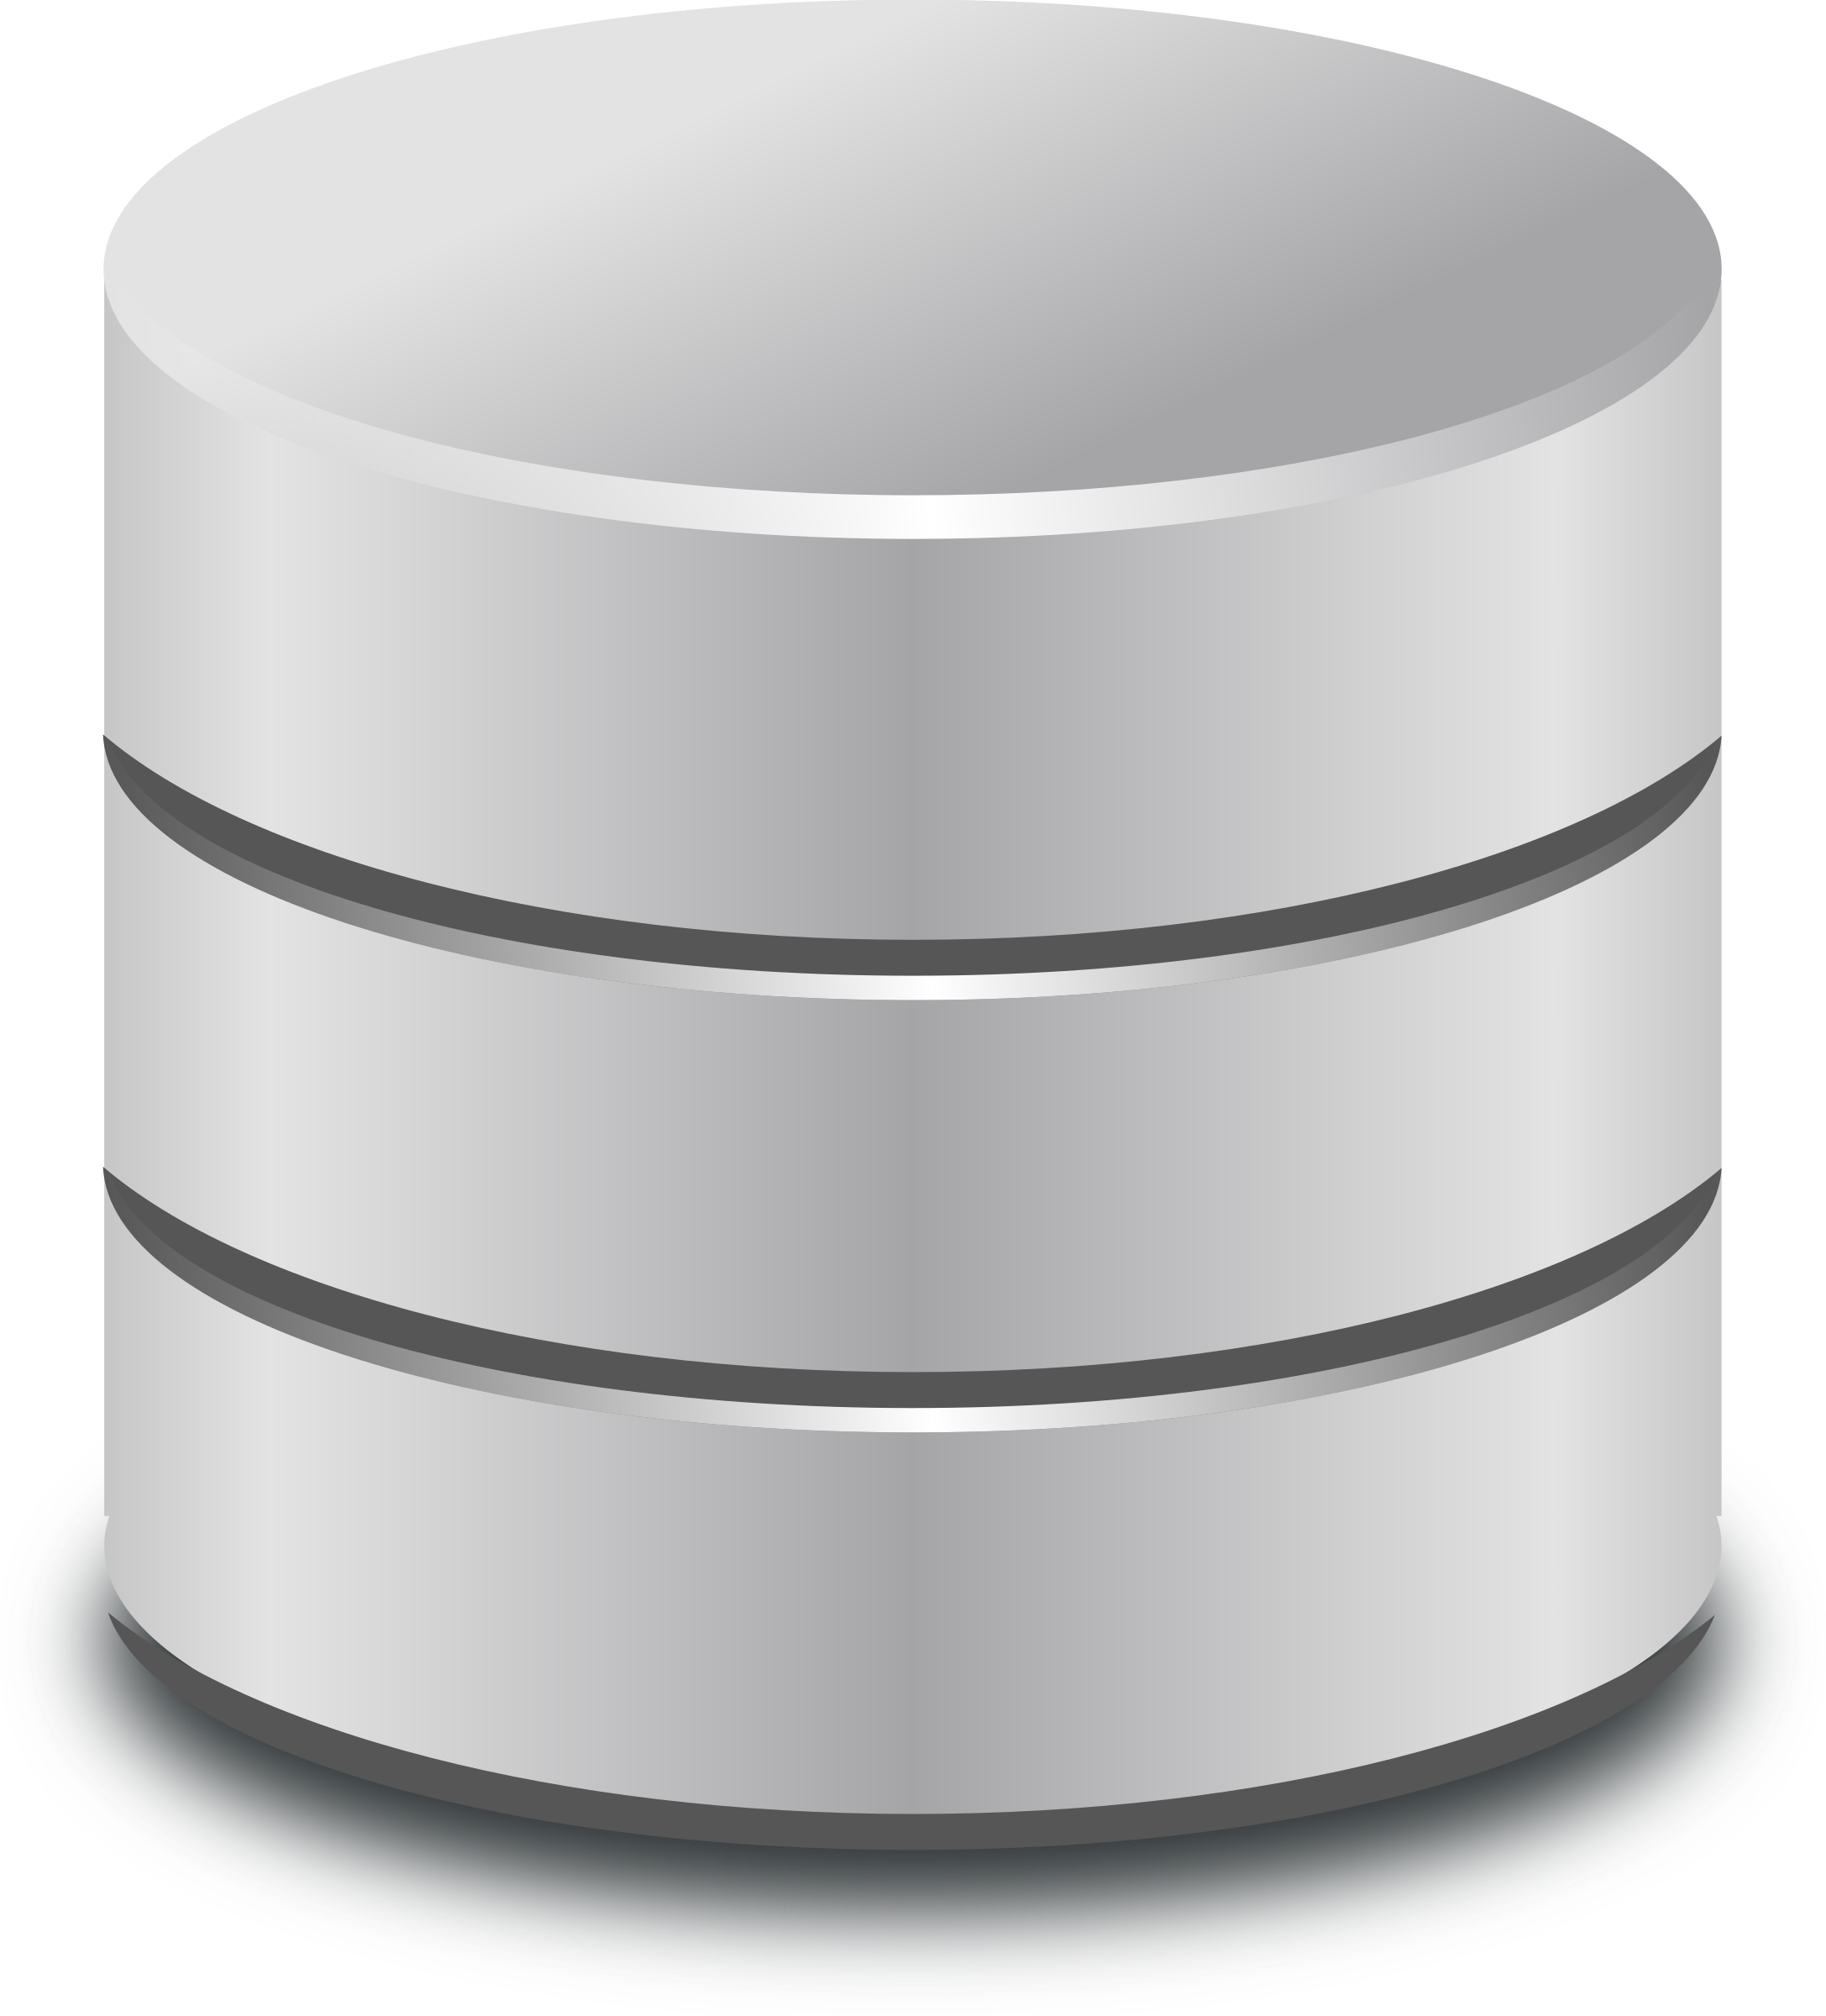 Database Clipart